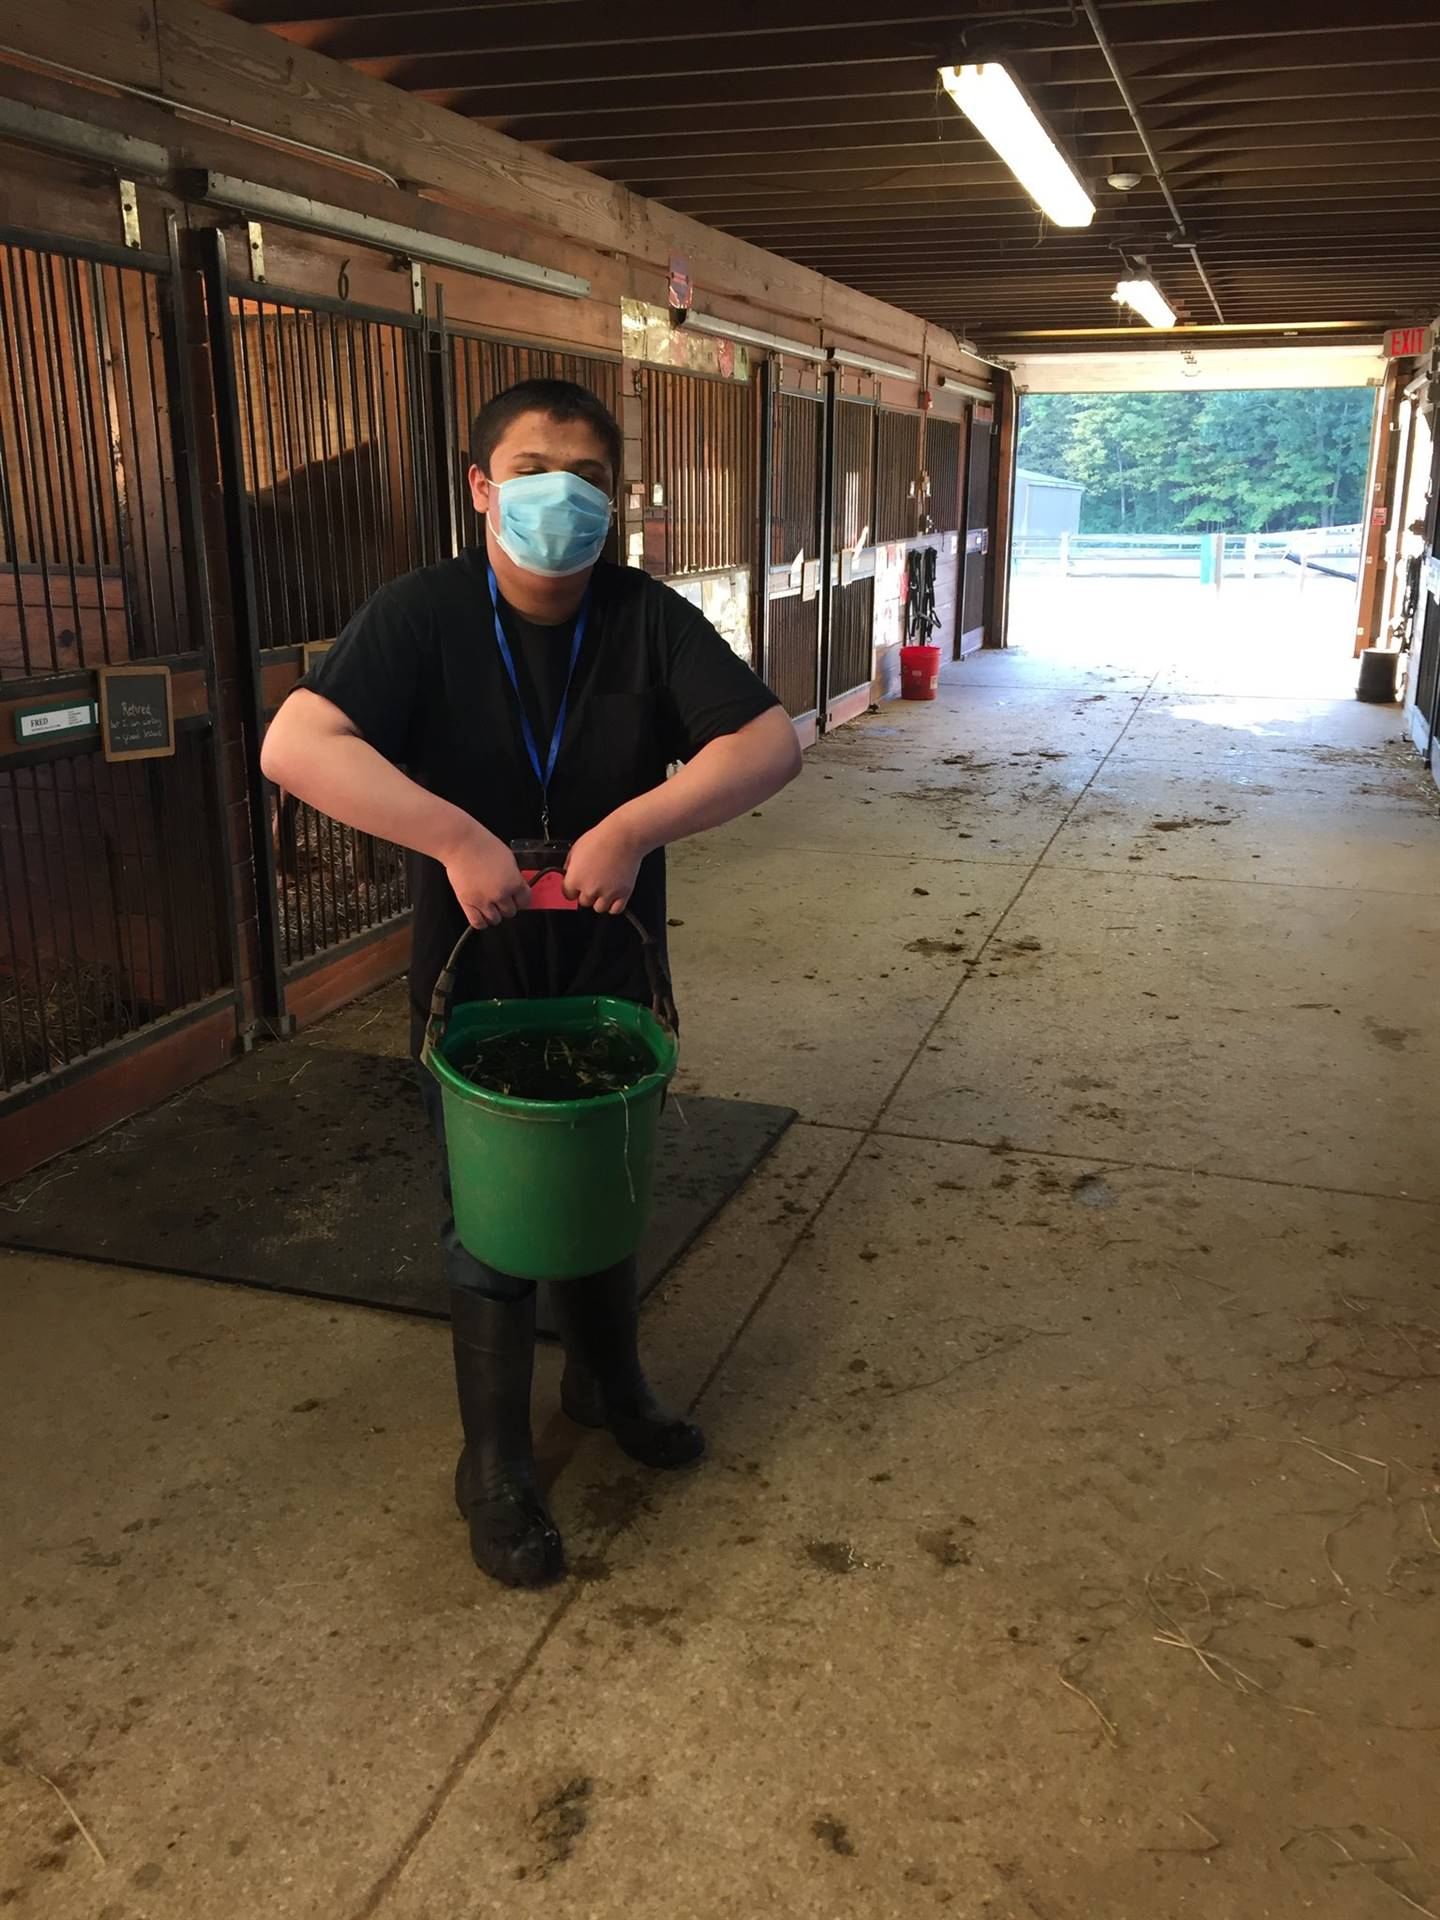 Students work in the barn each morning changing water buckets and completing light barn tasks